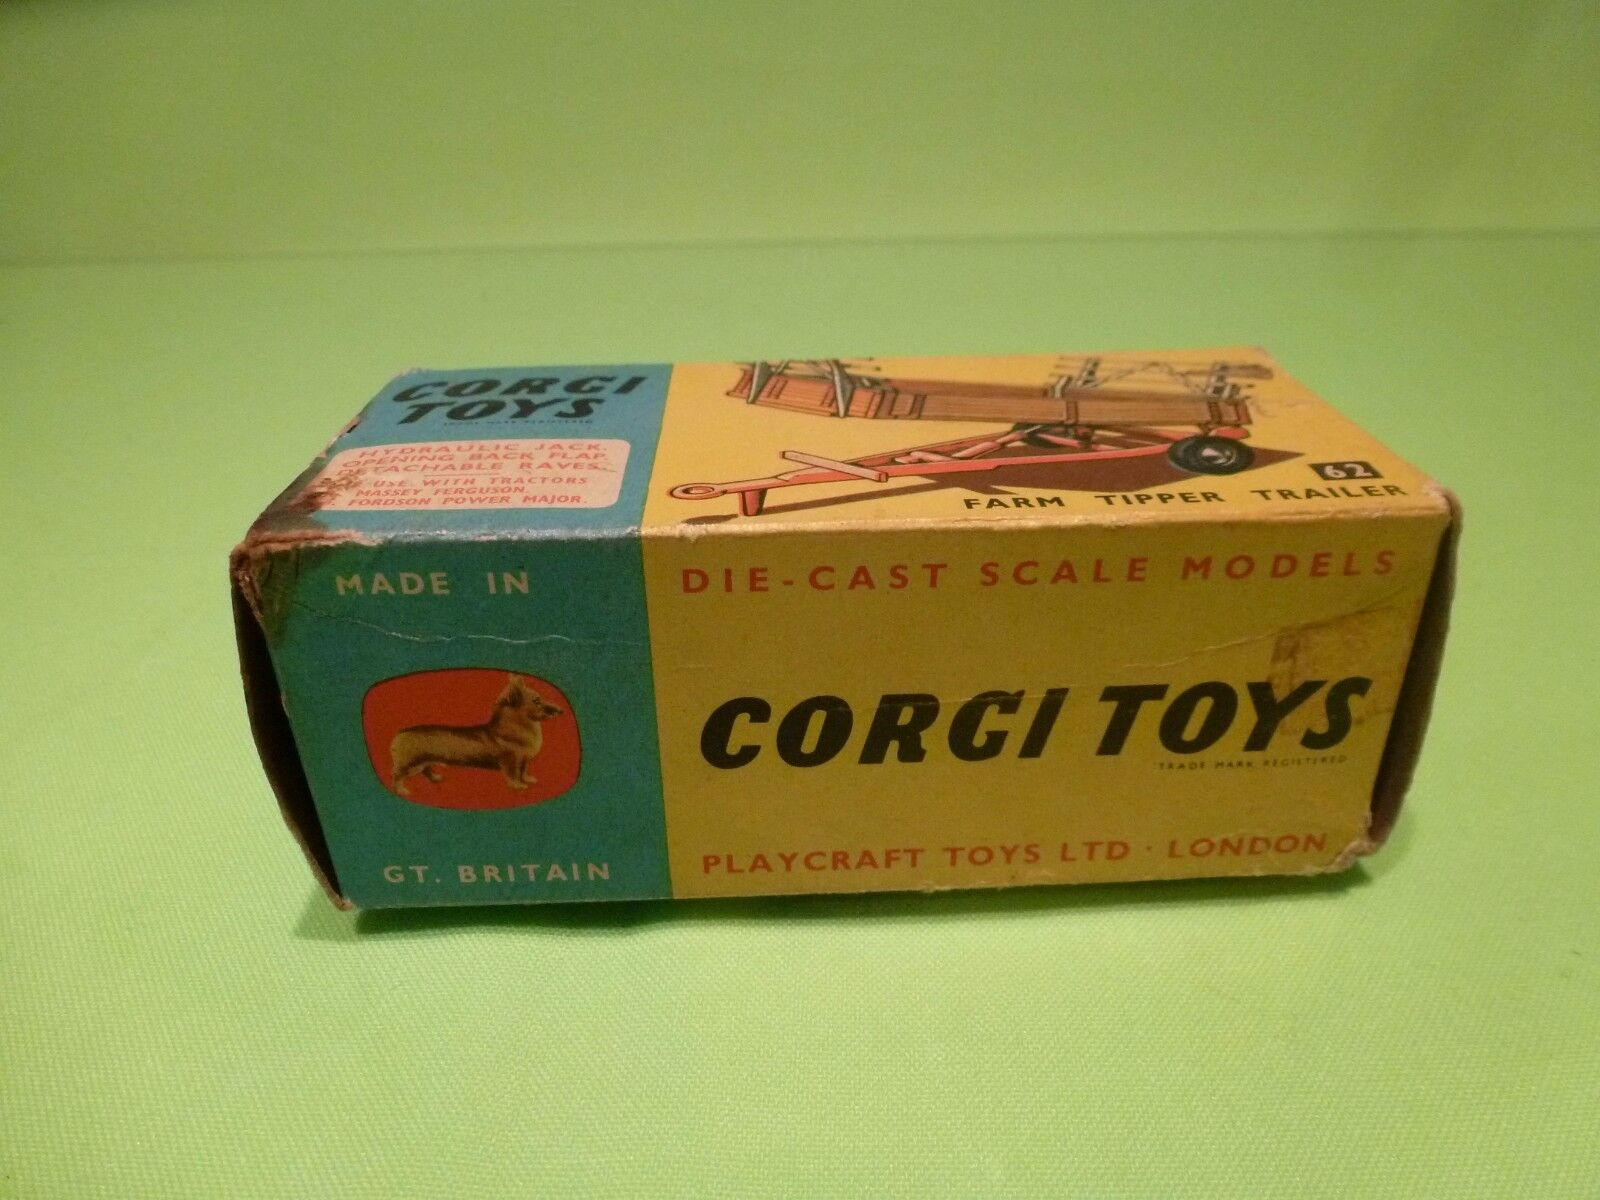 CORGI TOYS 62 BOX FOR FARM TIPPER TRAILER - NICE NICE NICE CONDITION - ONLY BOX ONLY BOX - 5dbc1d